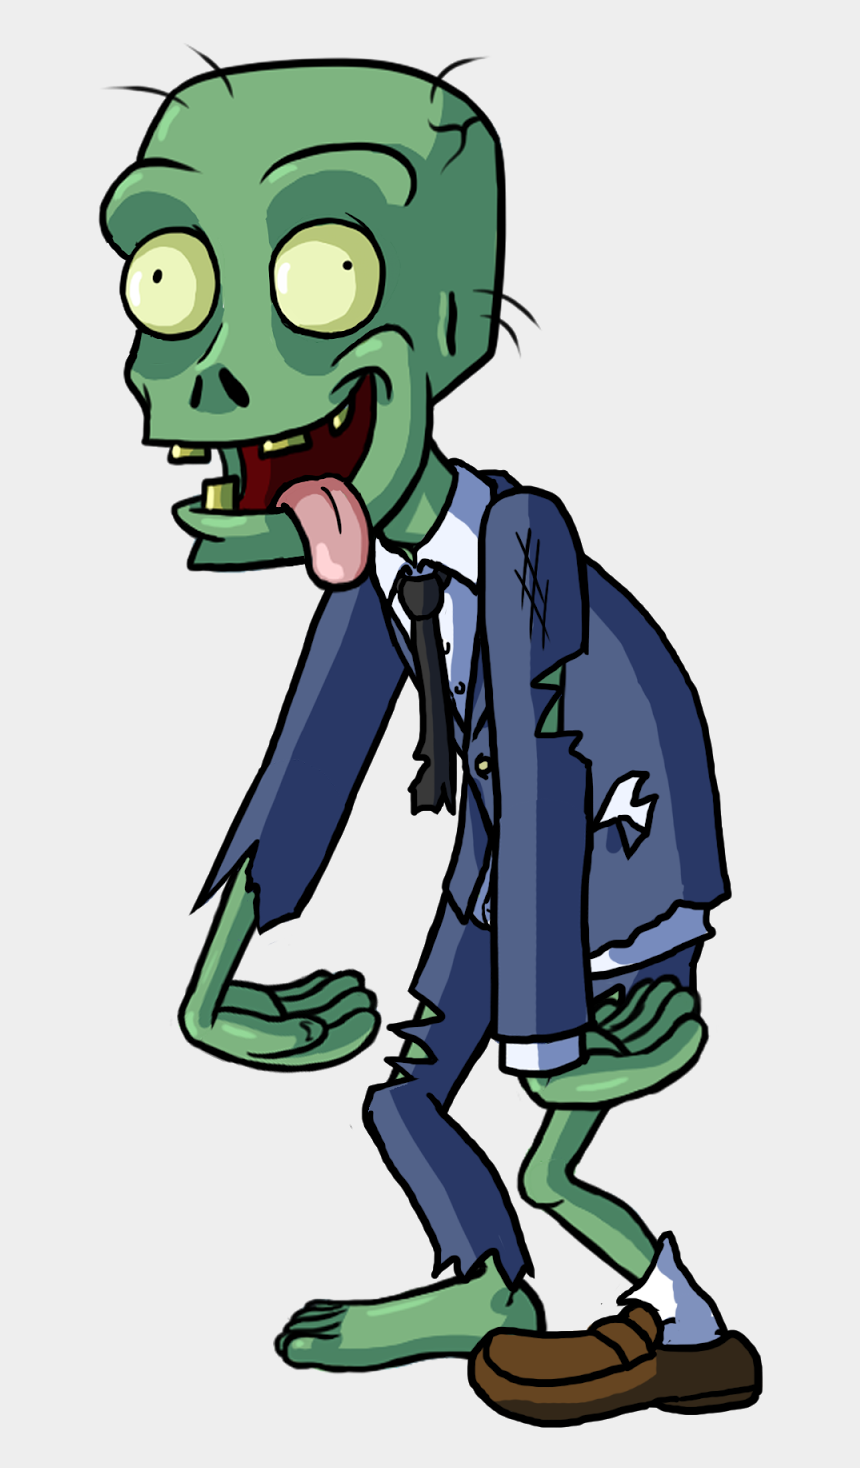 zombie clipart, Cartoons - Zombie Png Images Free Download - Transparent Background Zombie Animated